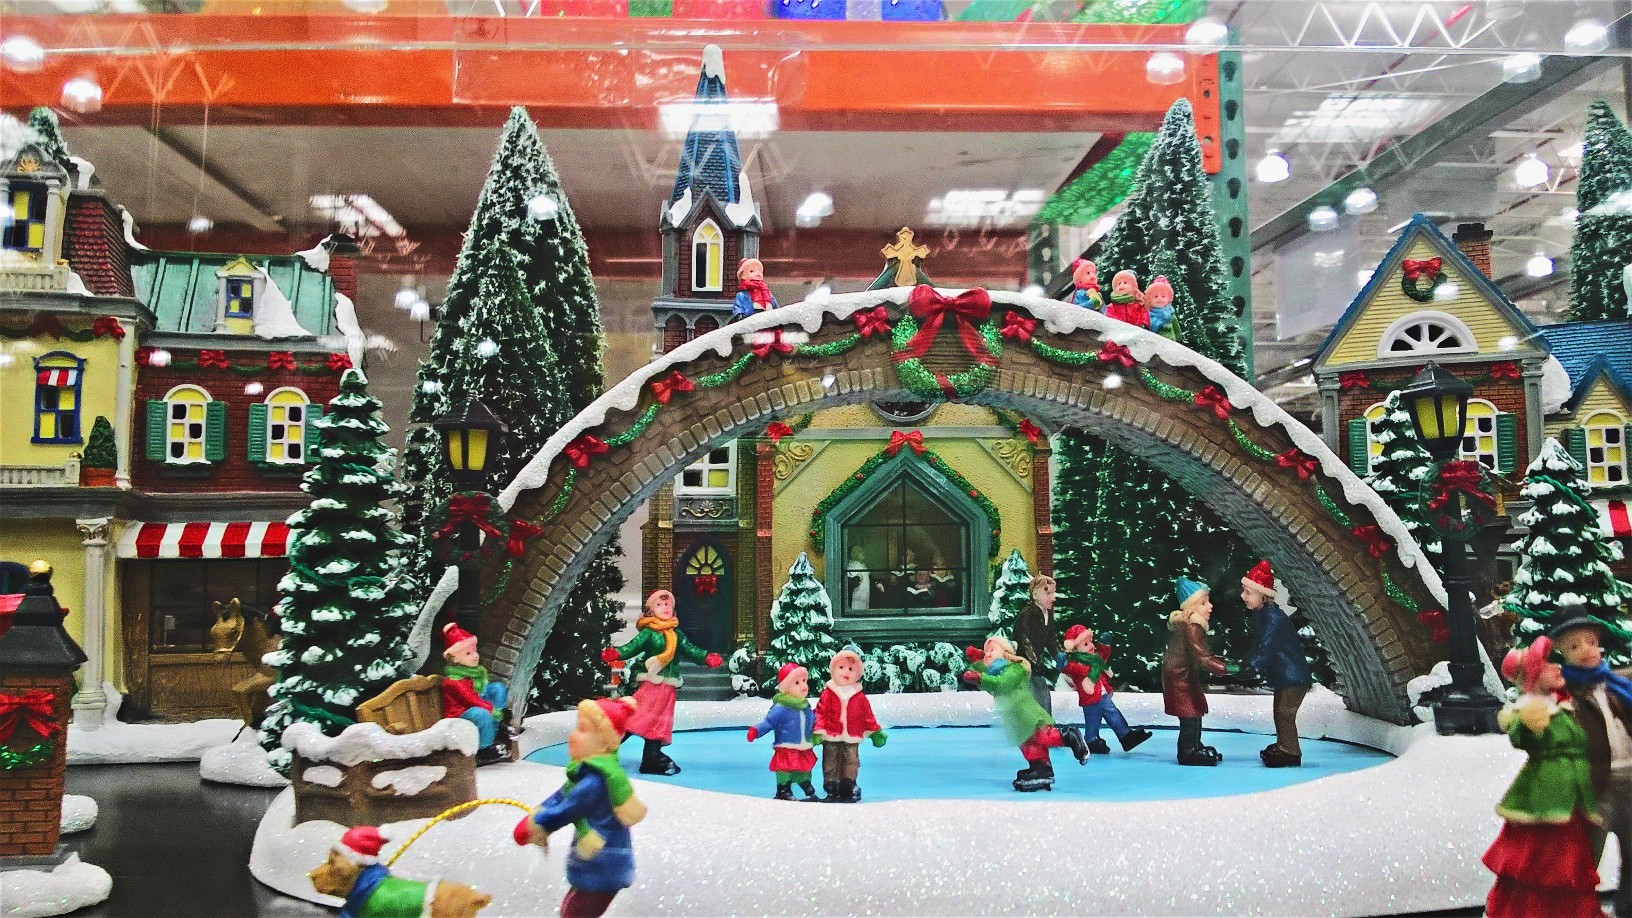 lowest price 670e7 1403a Costco's Christmas Collection - Canberra